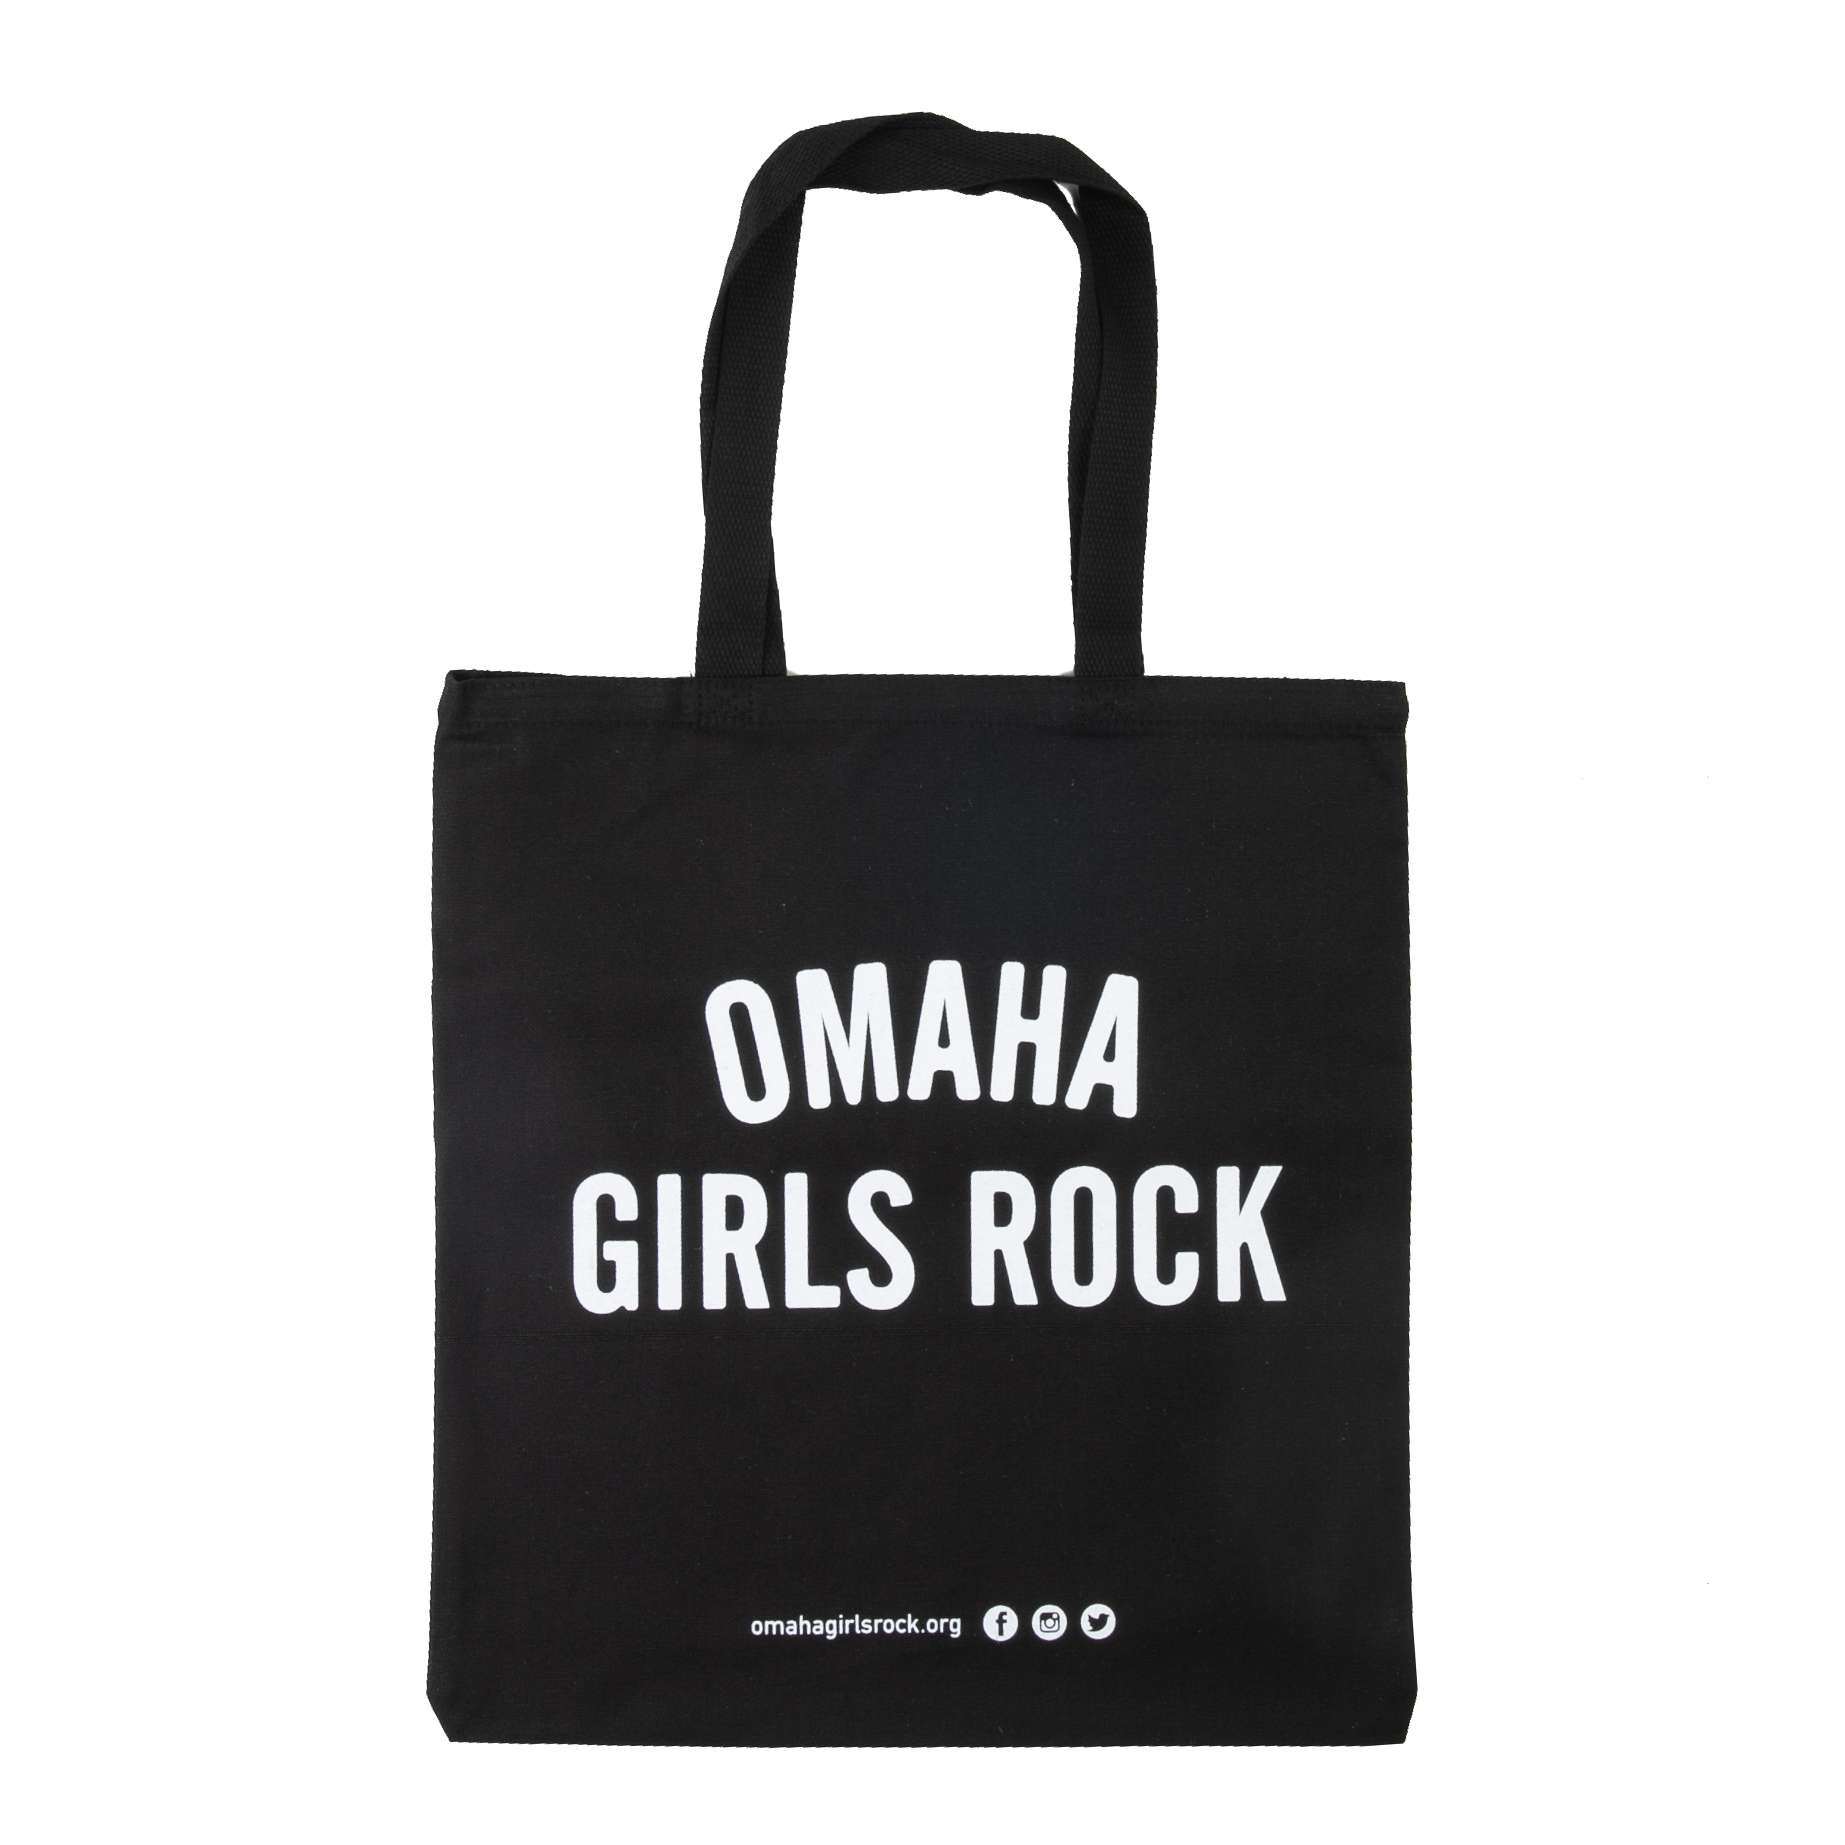 Omaha Girls Rock Tote Bag- Black